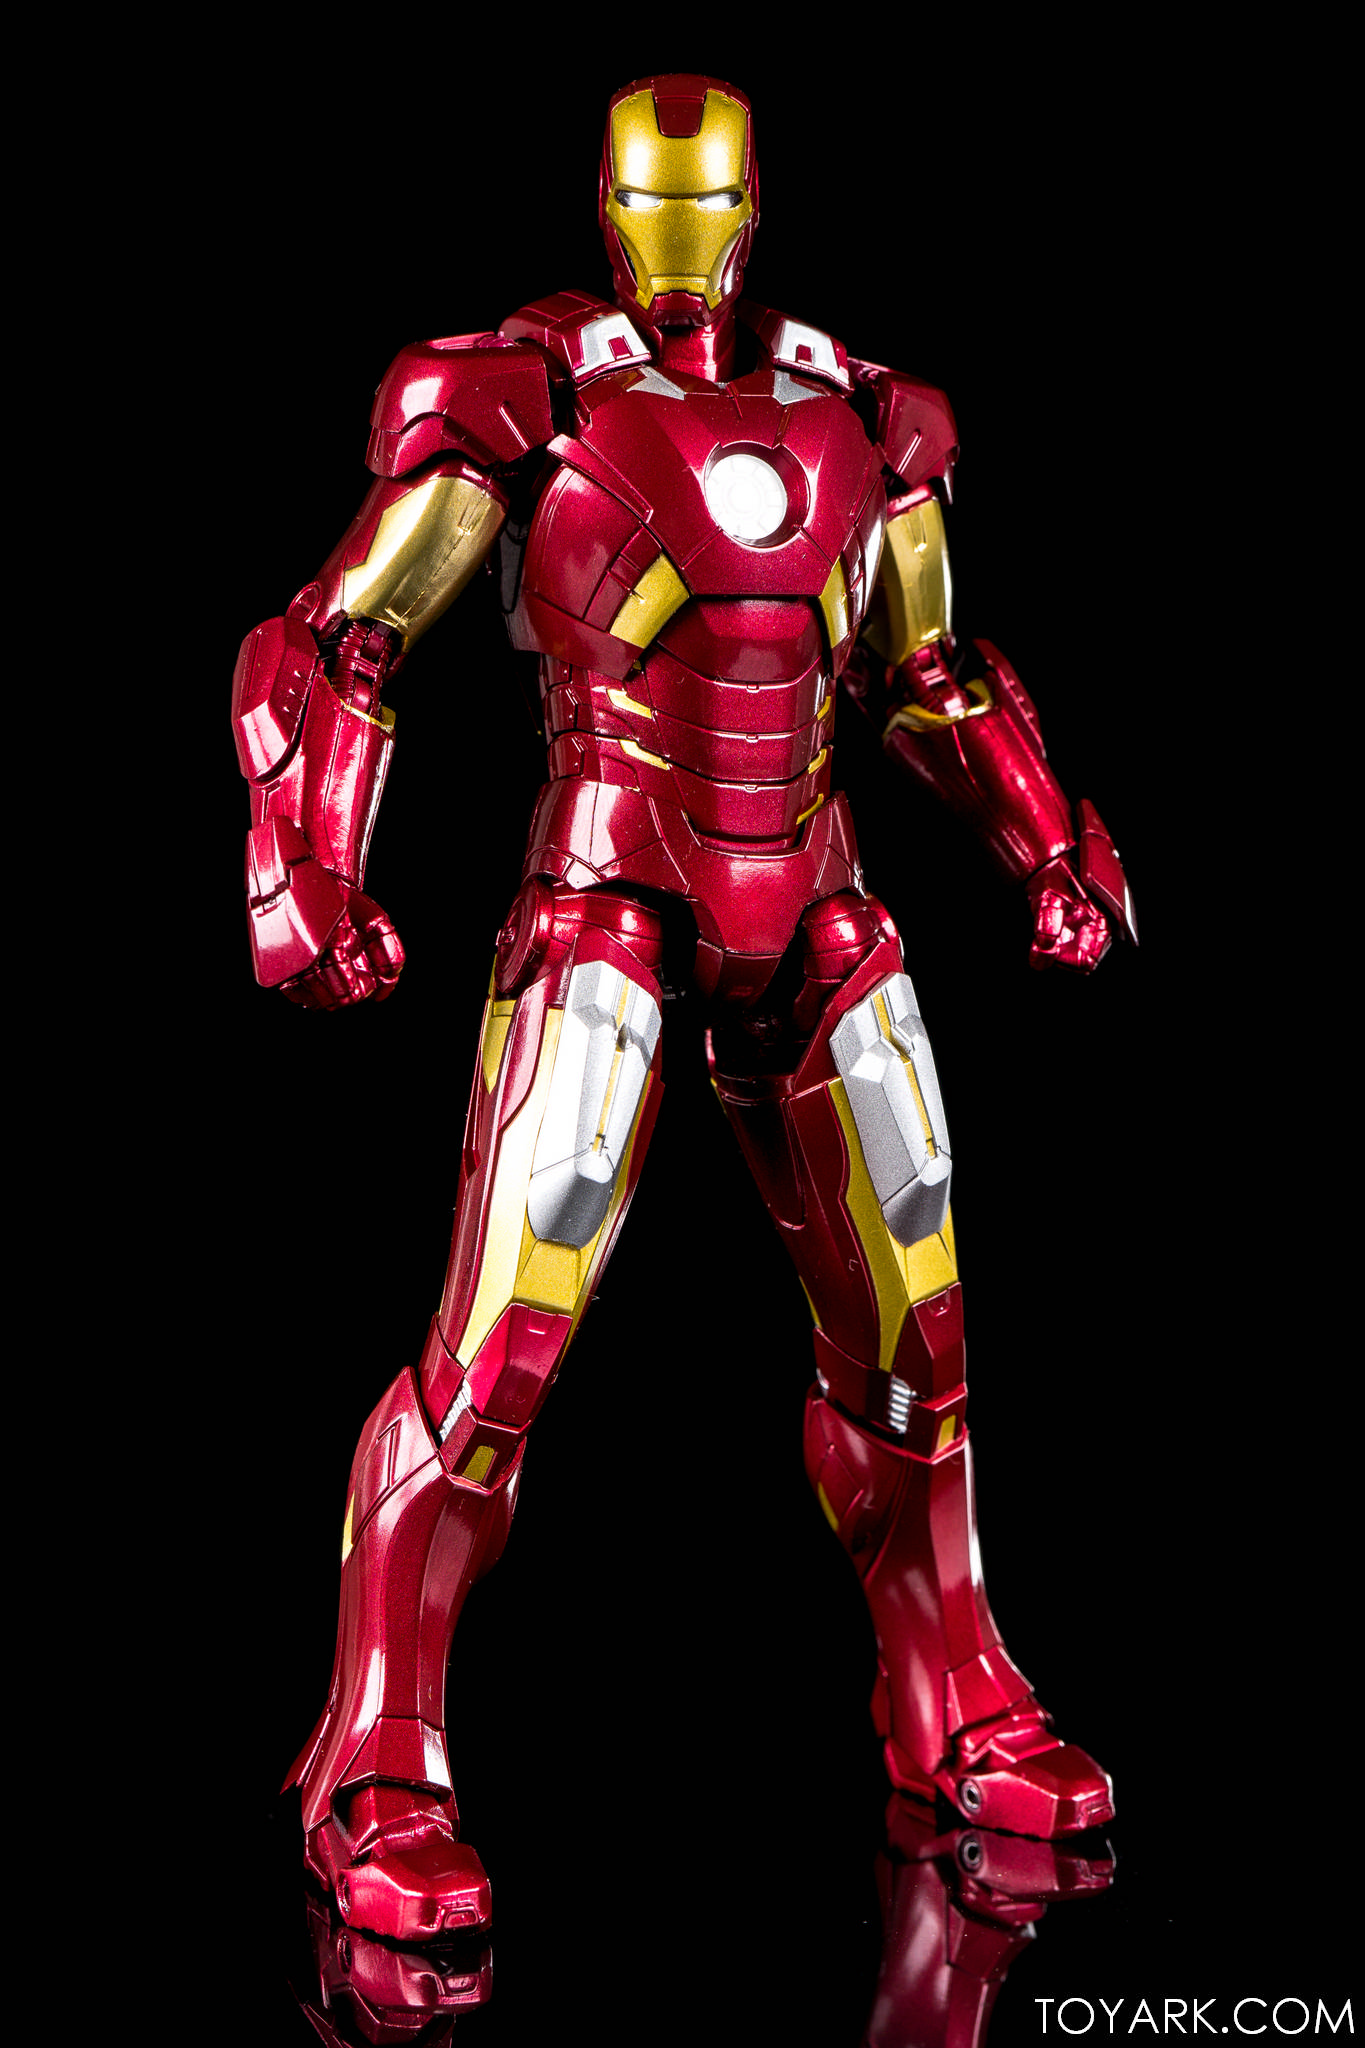 S.H. Figuarts Iron Man Mark VII In-Hand Gallery! - The ...